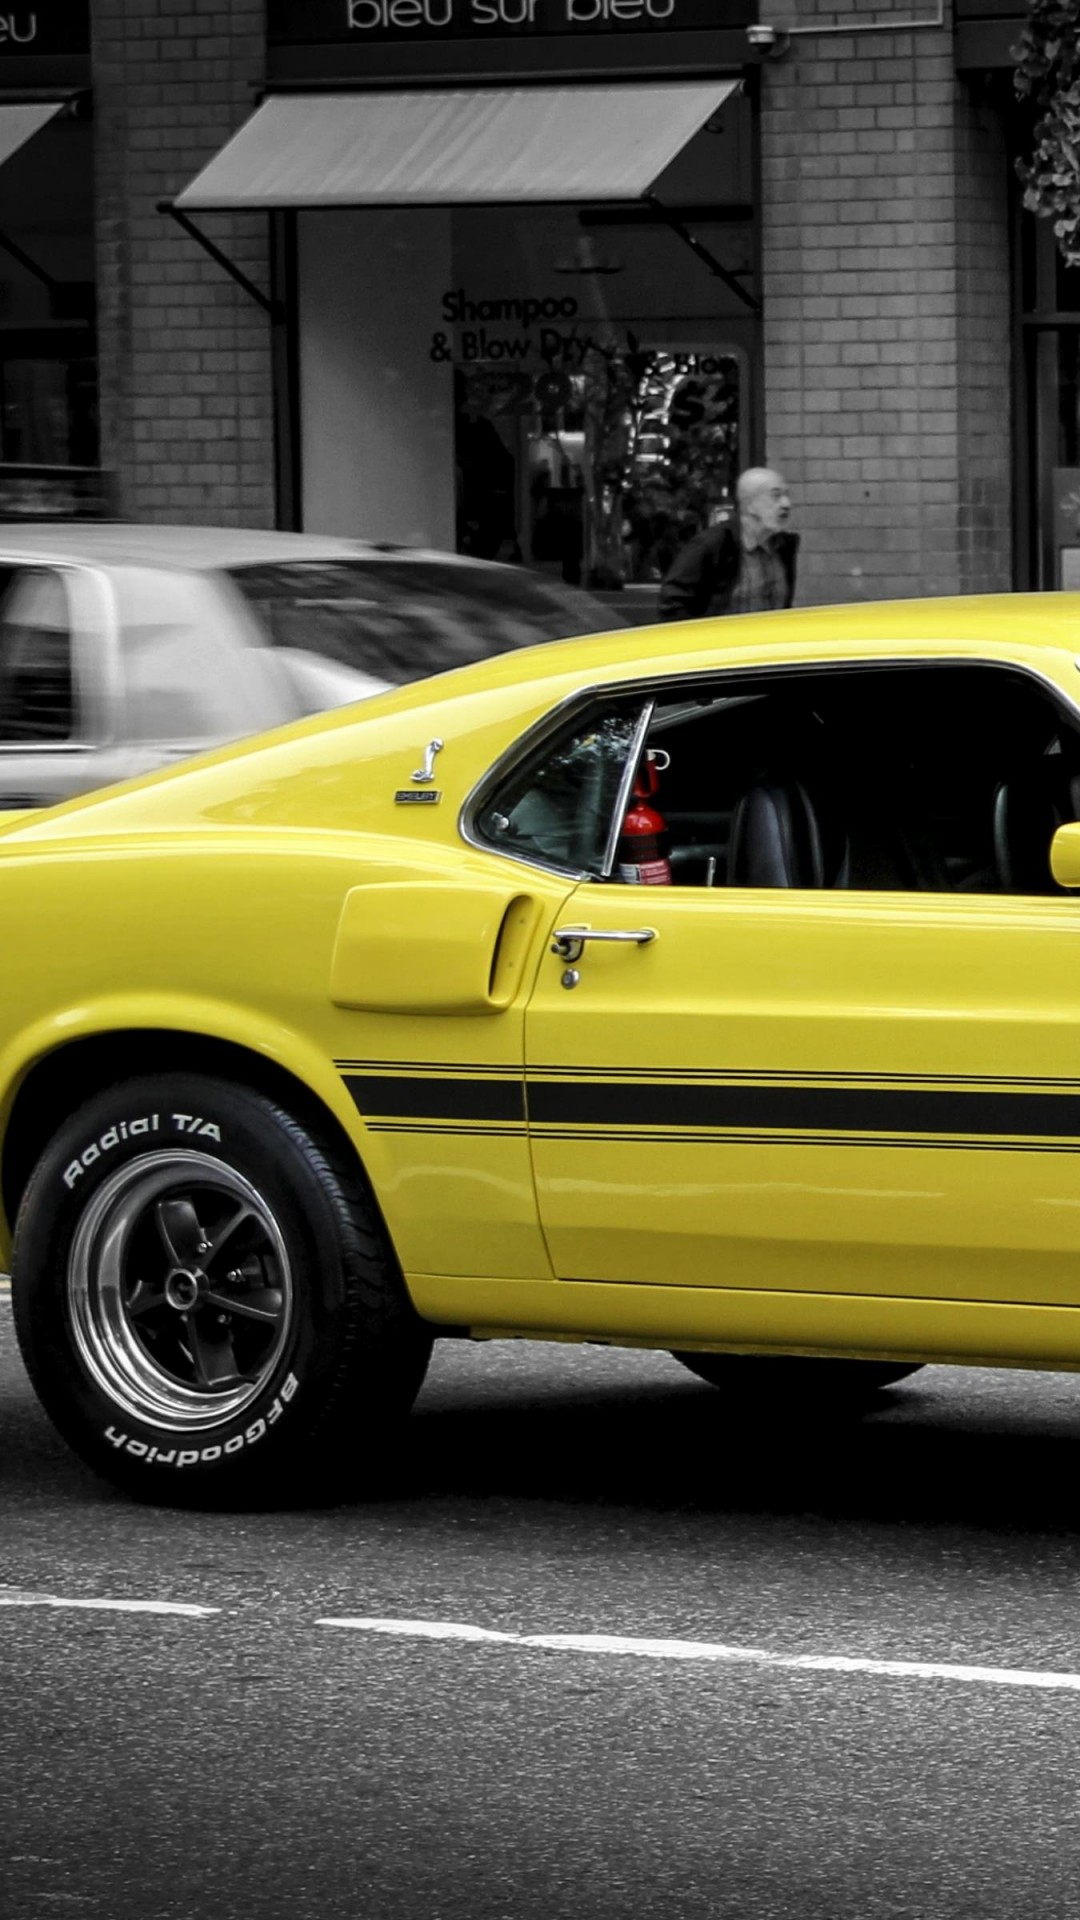 1969 Ford Mustang GT350 Wallpaper for LG G2